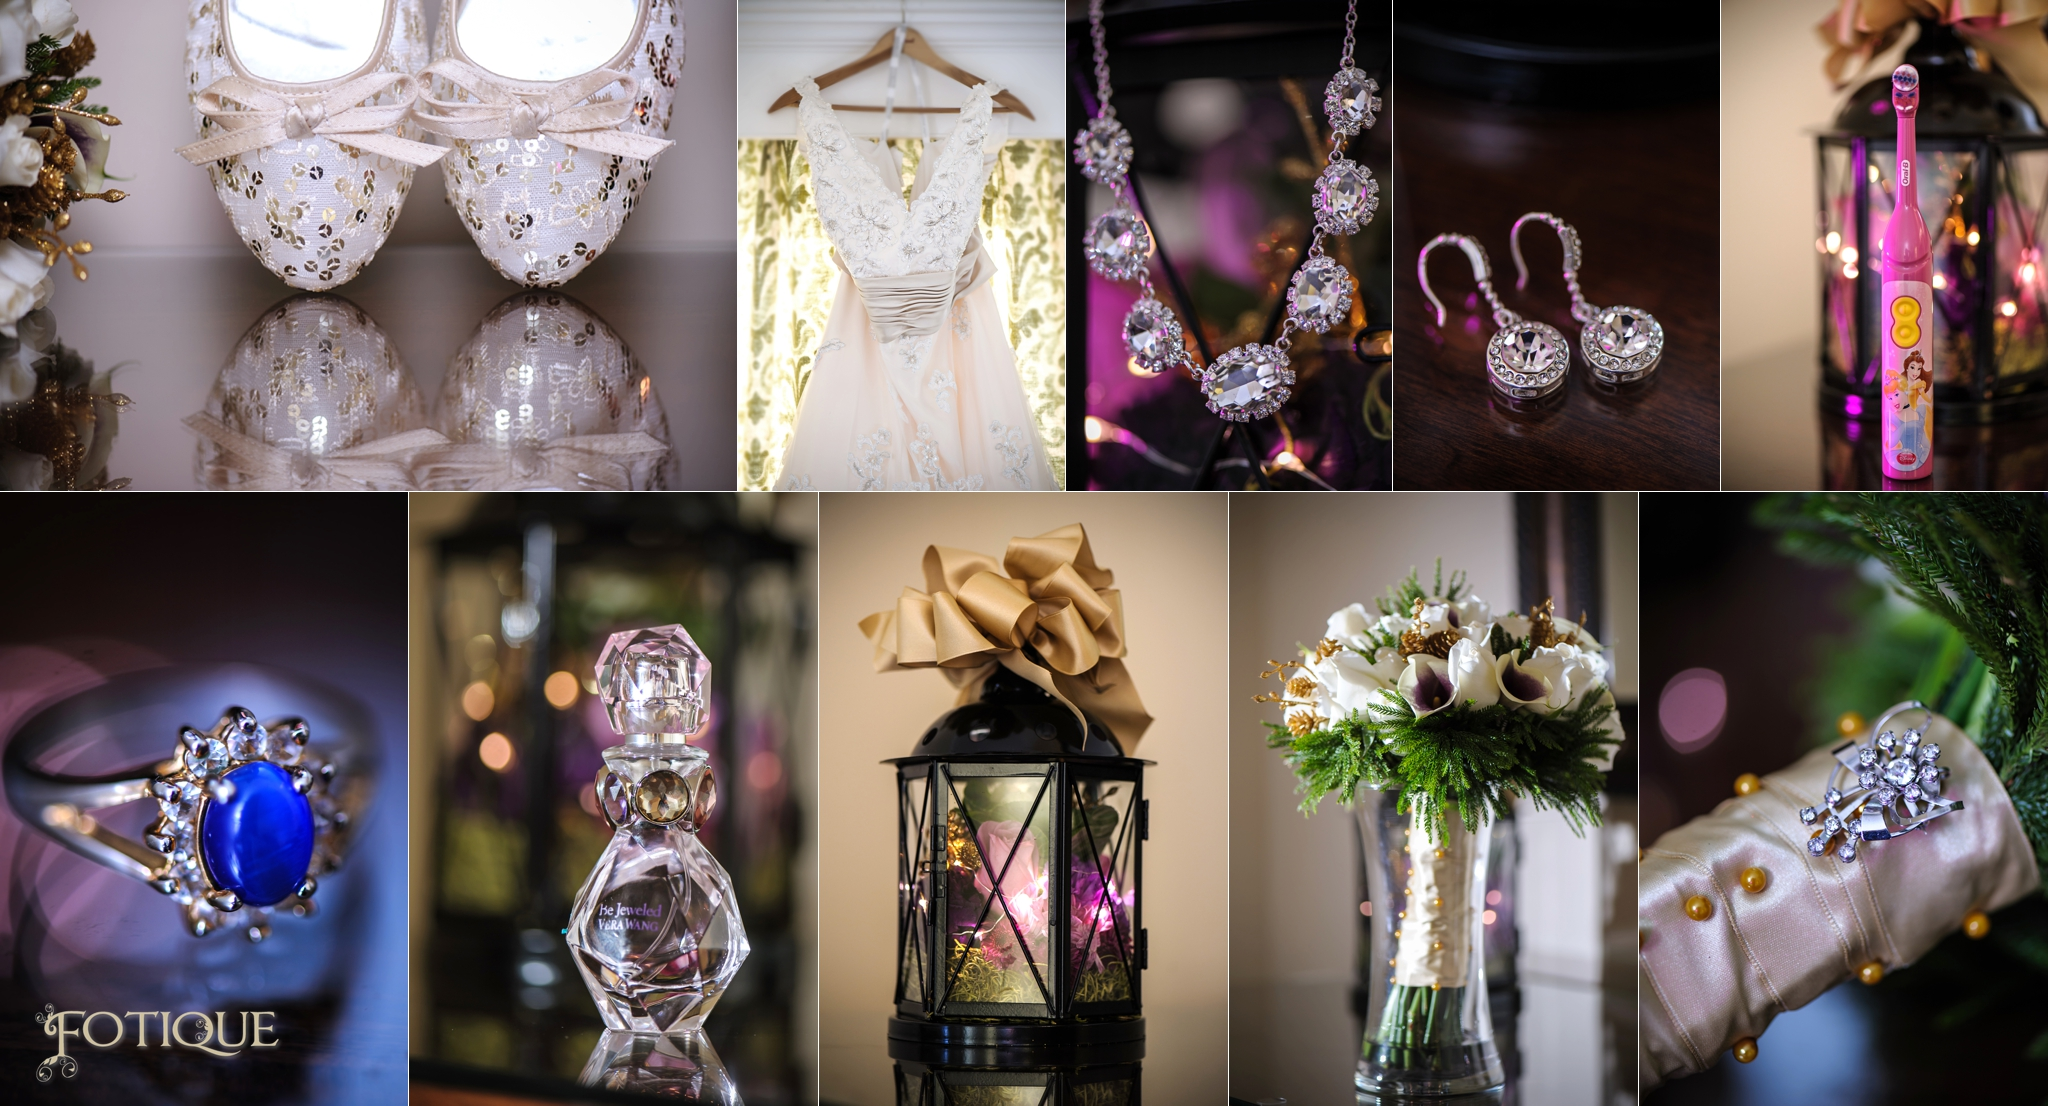 Hingham MA Wedding Photographer  Publick House Wedding  Burgundy and Champagne Wedding Winter Wedding Horse and Carriage Catholic Wedding Twinkle Lights Lanterns Bride and Groom Night Wedding Historical Inn Wedding Fotique First Look